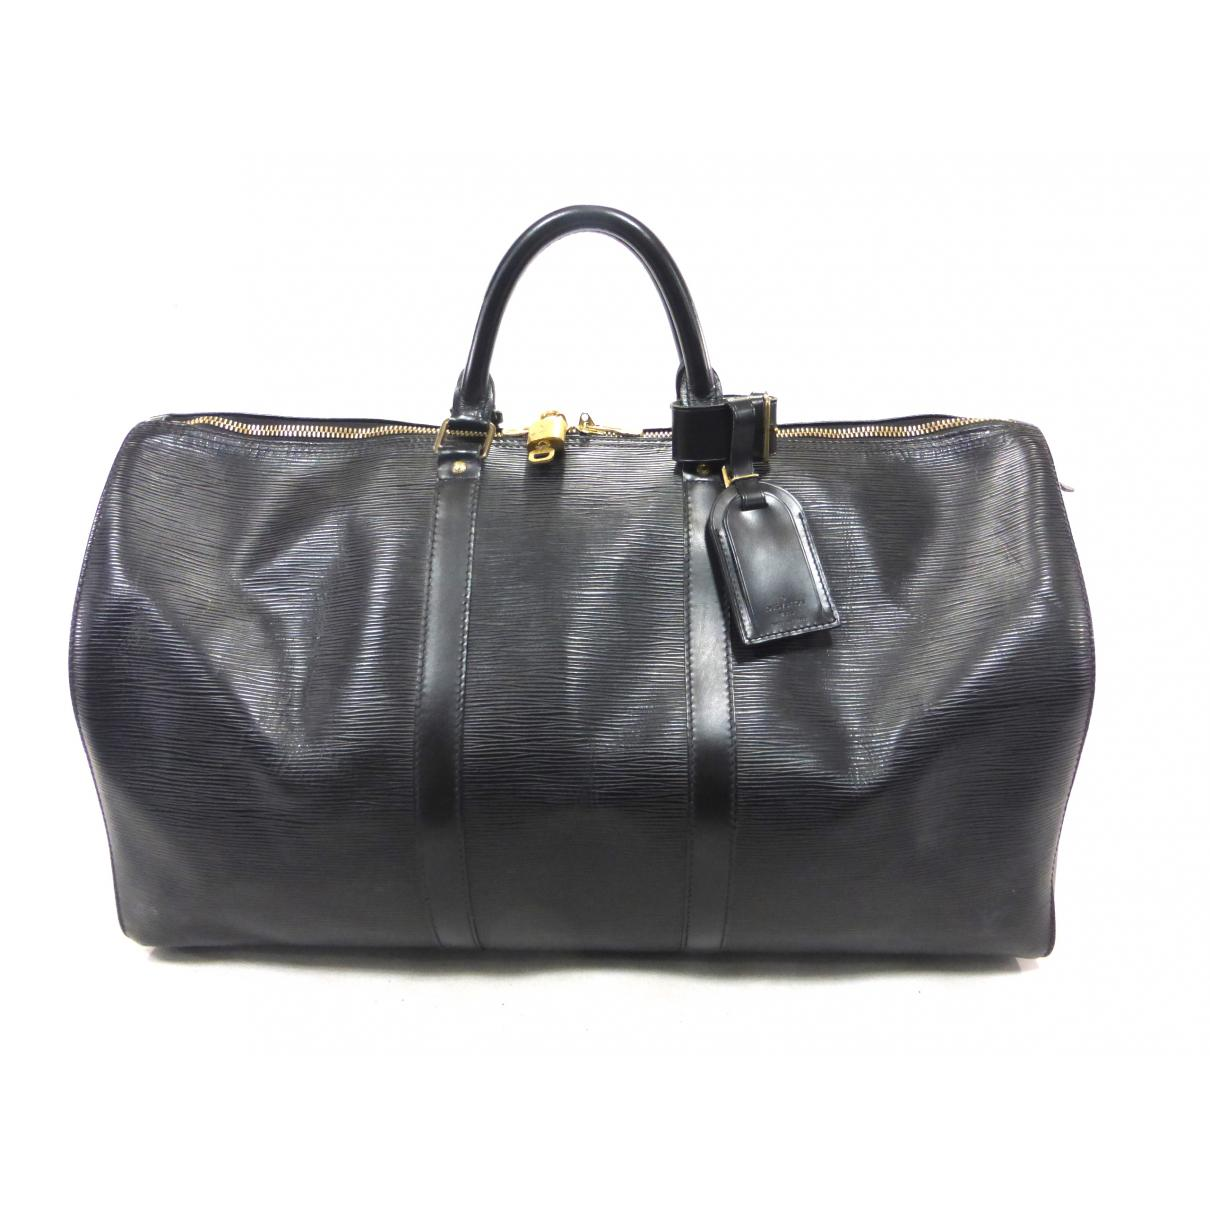 Lyst - Louis Vuitton Vintage Keepall Black Leather Travel Bag in Black 047db7f7692ab